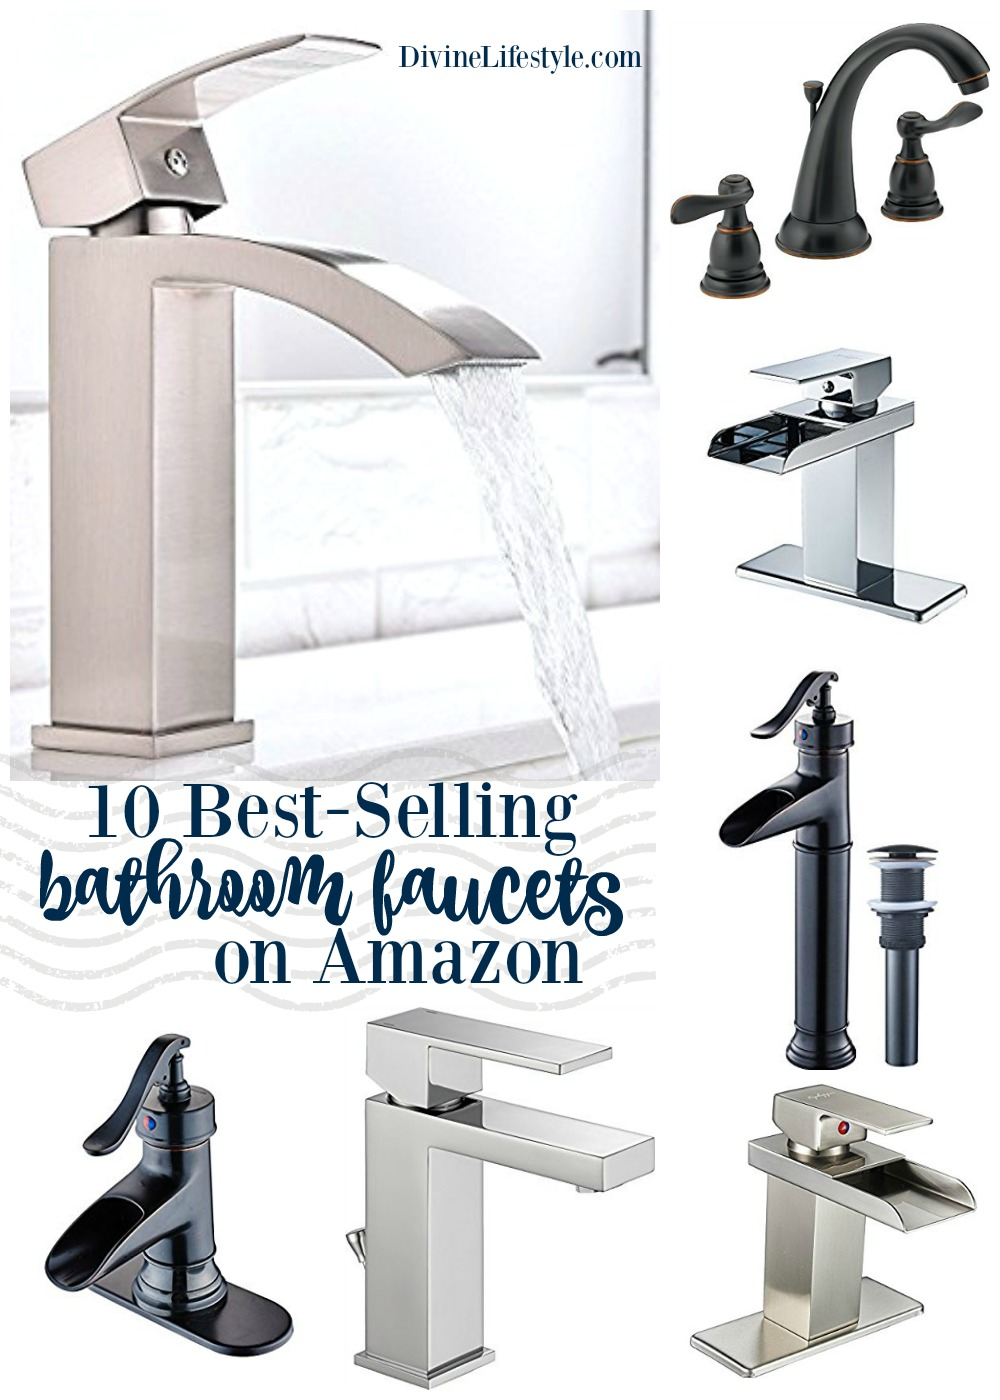 Best Small Bathroom Faucets: 10 Best-Selling Bathroom Faucets On Amazon